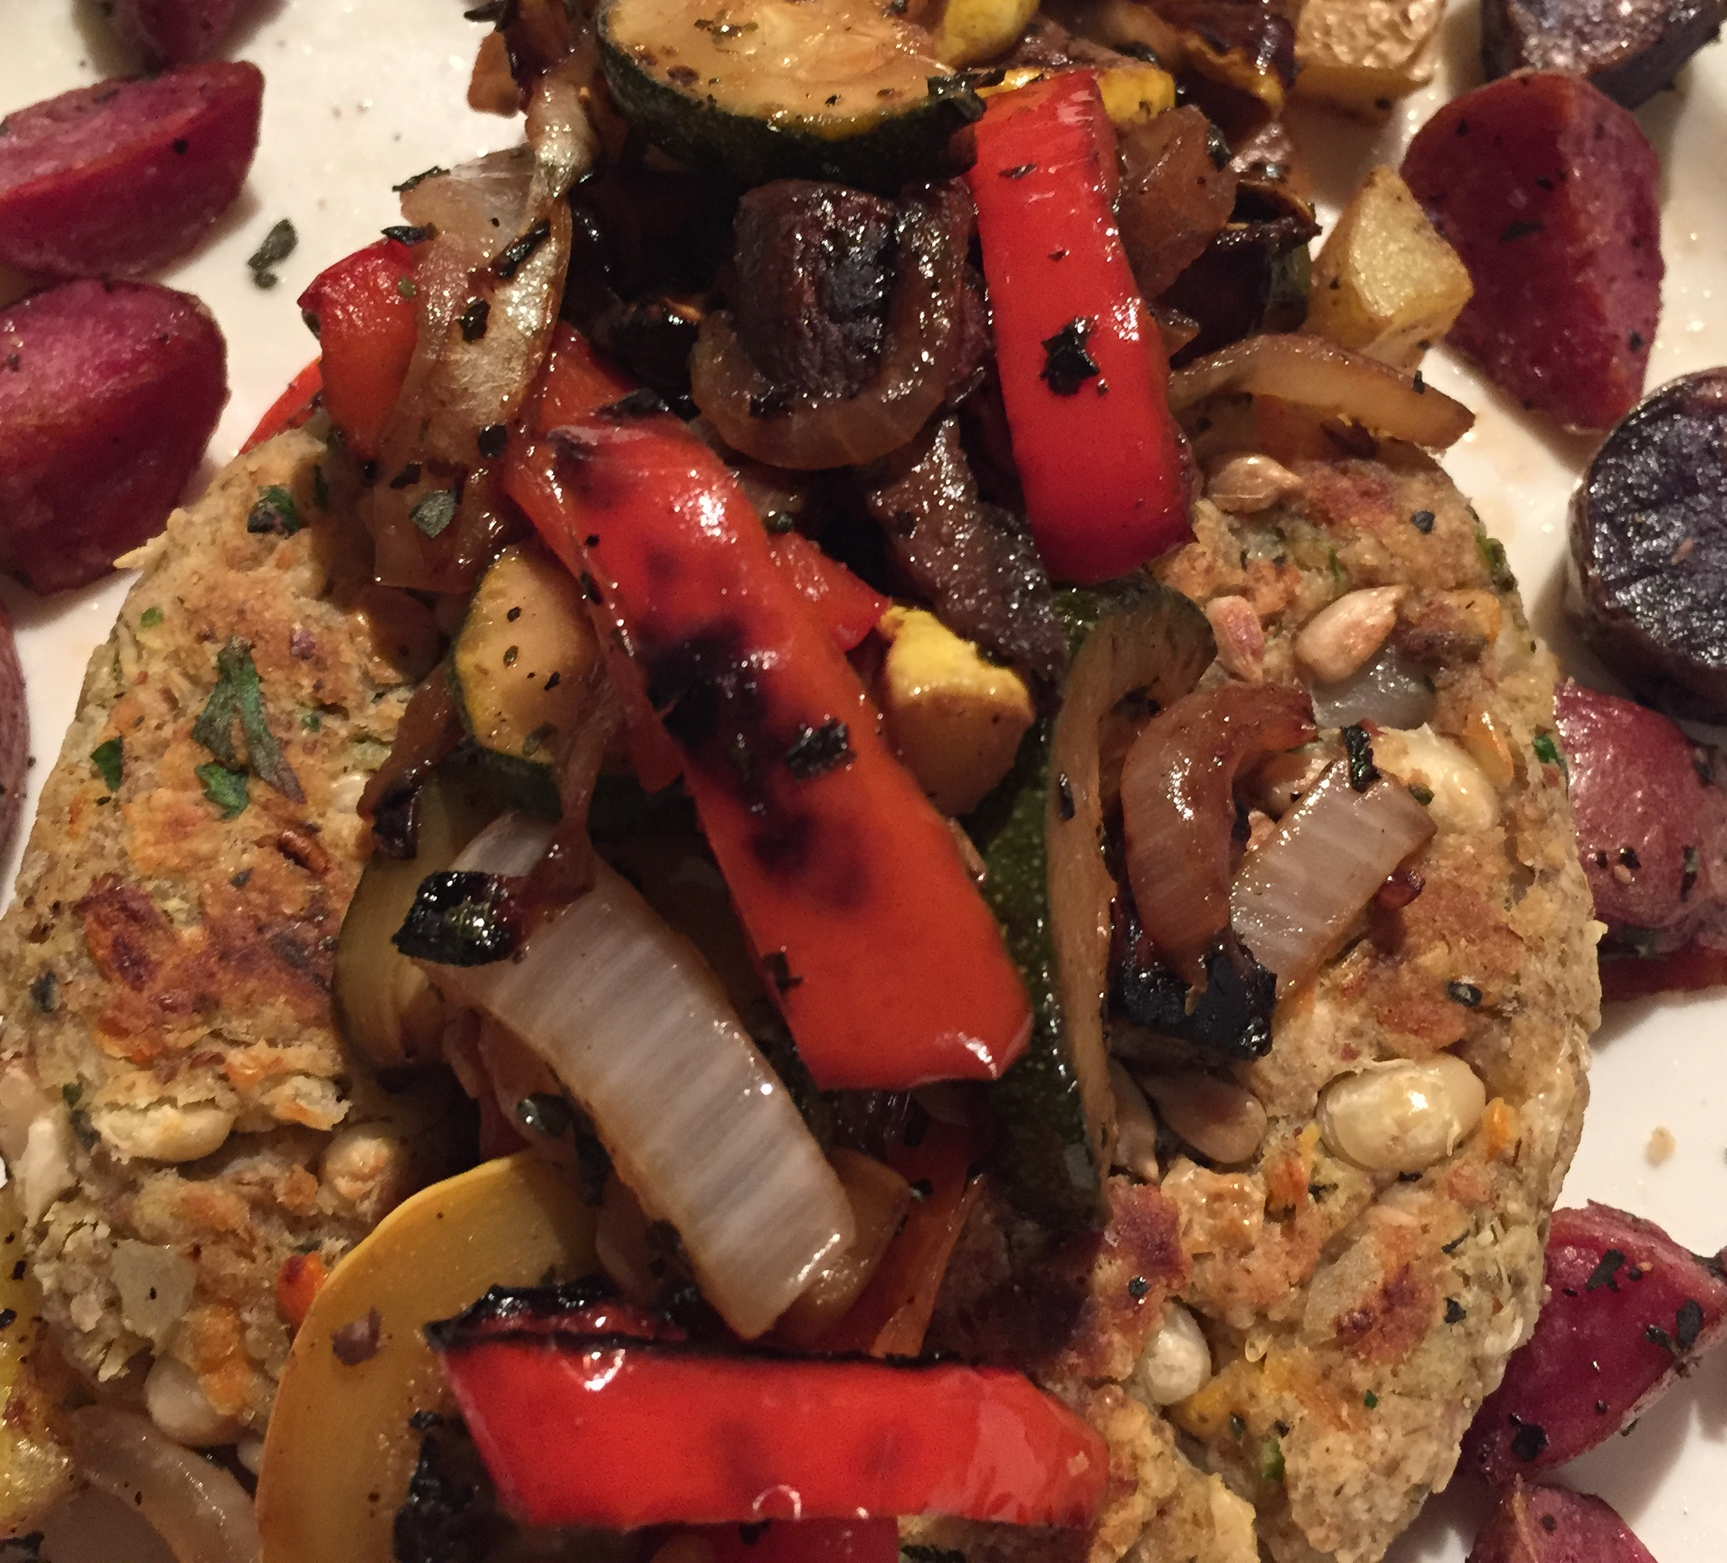 Veggie Burger, Grilled Veggies and Oven Roasted Herbed Potatoes